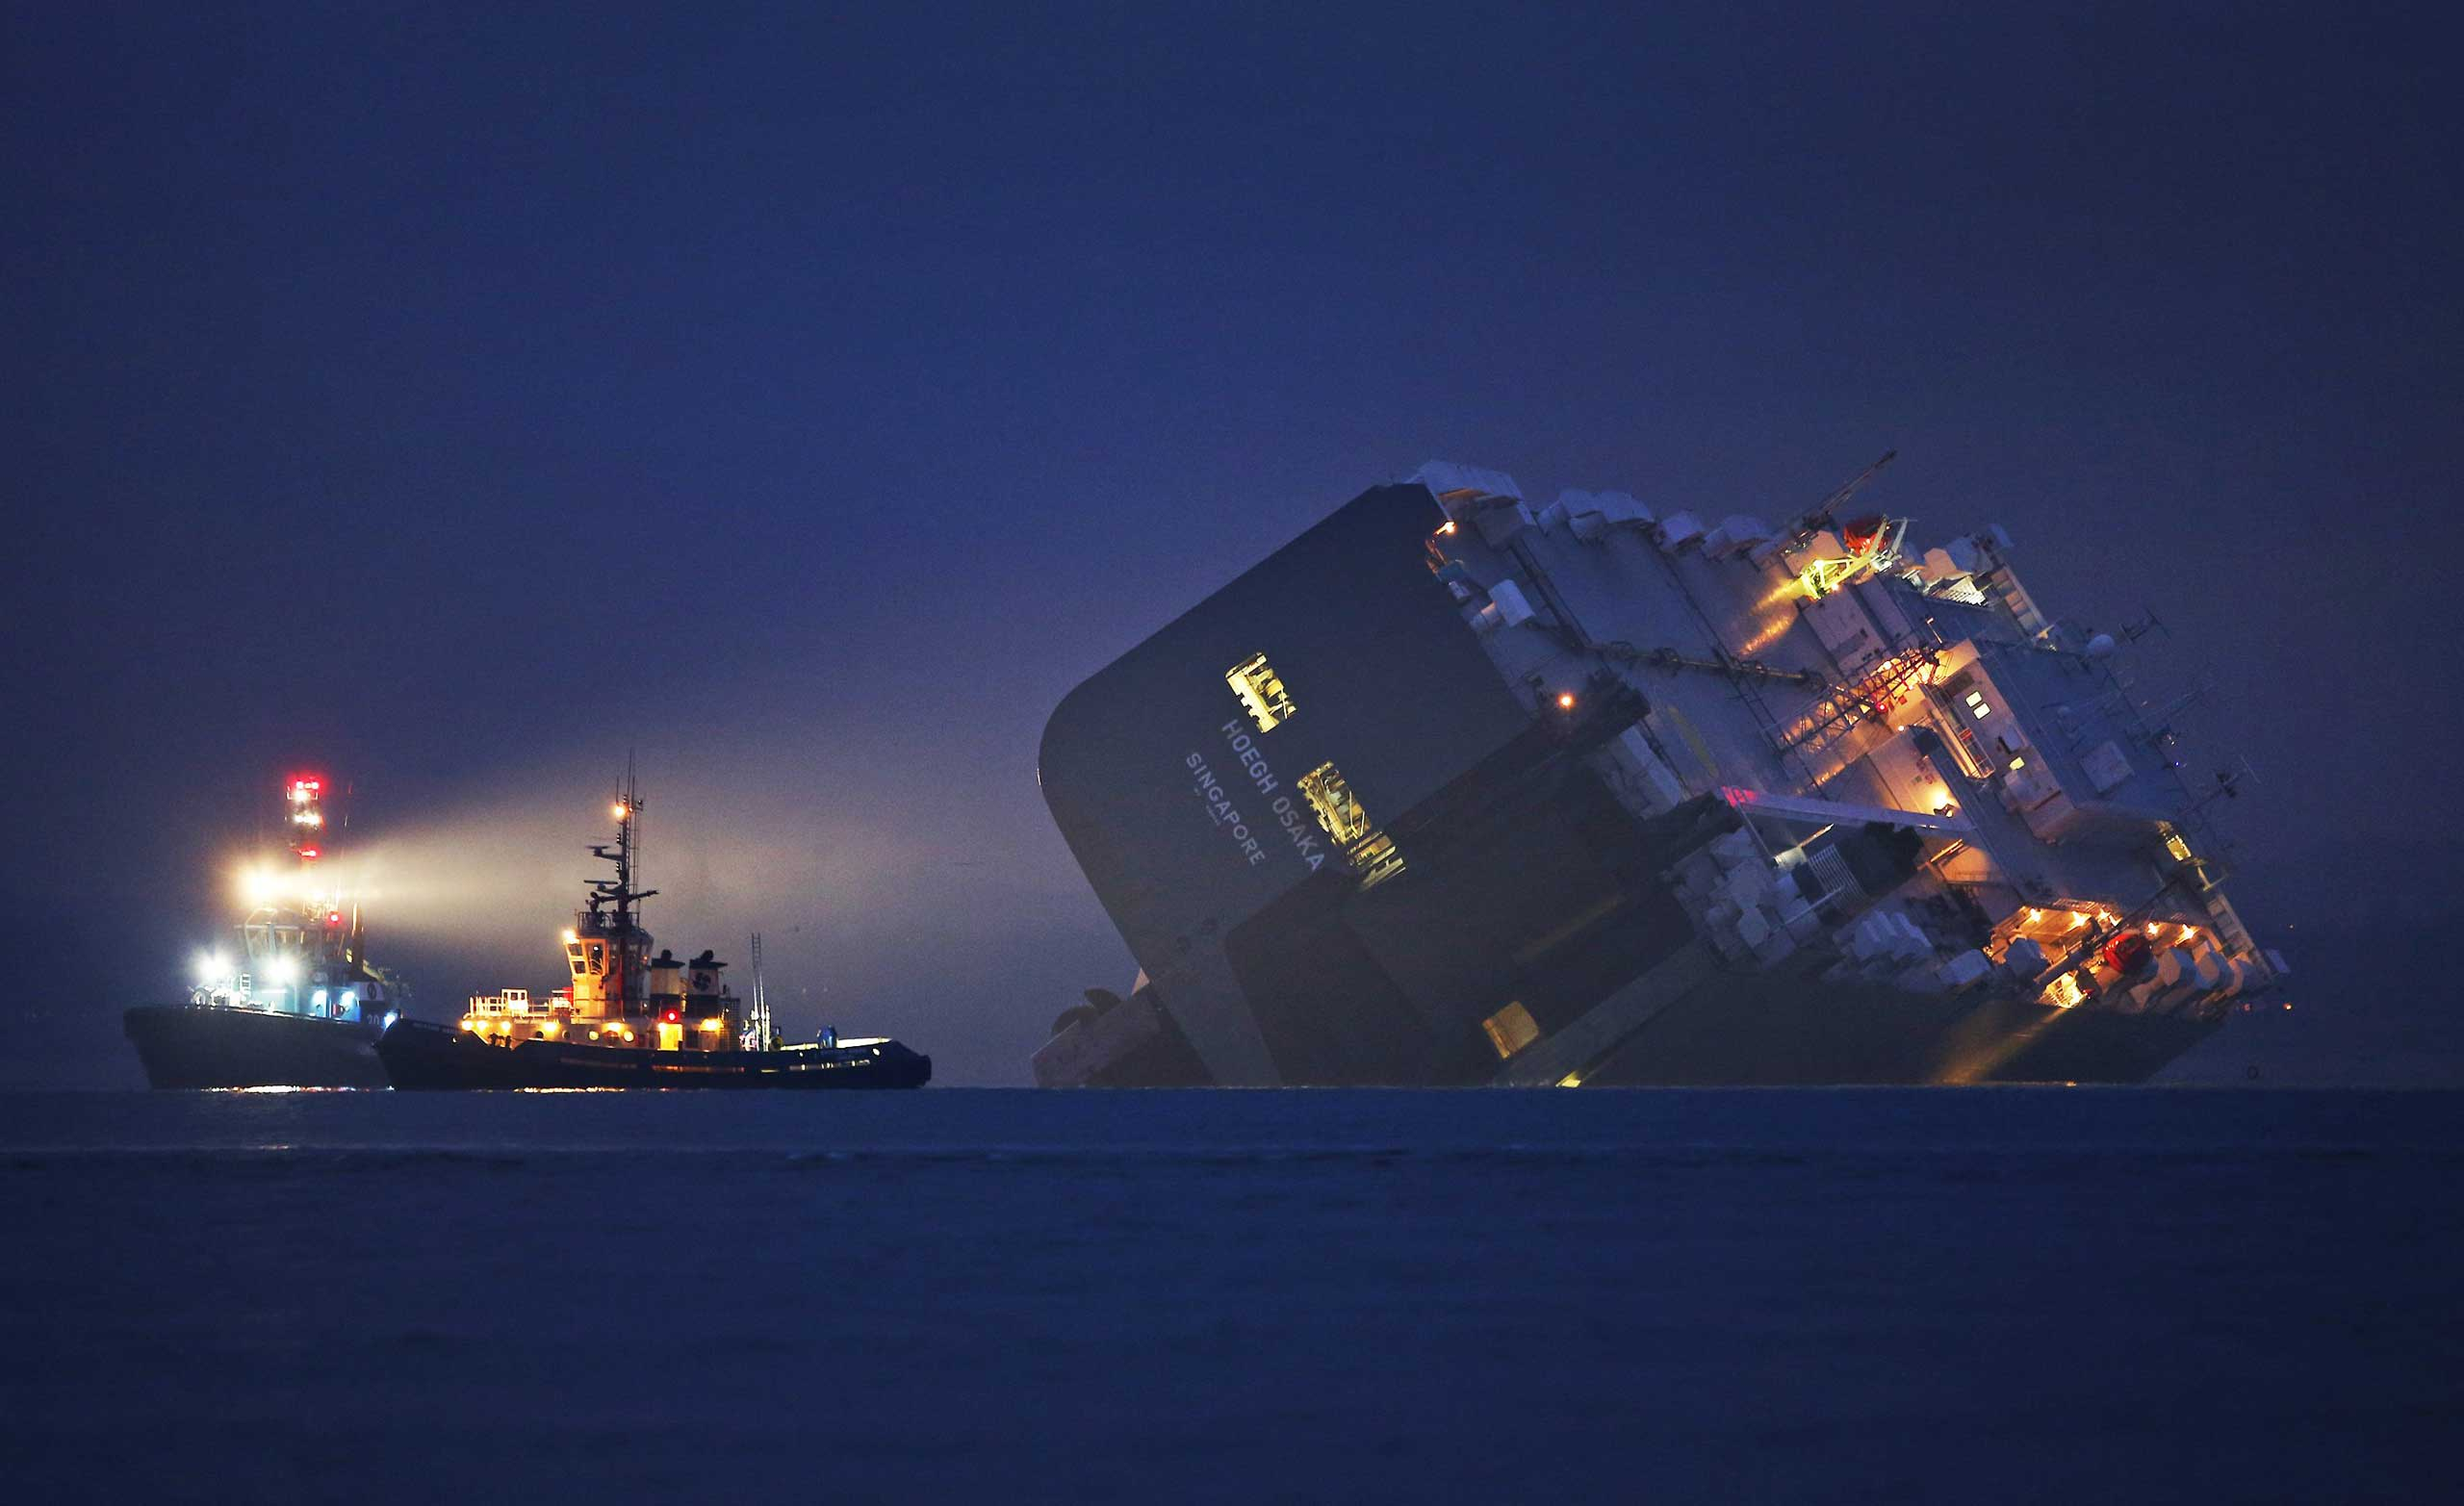 A salvage tug lights the hull of the stricken Hoegh Osaka cargo ship after it ran aground on a sand bank in the Solent on Jan.4, 2015 in Cowes, England.